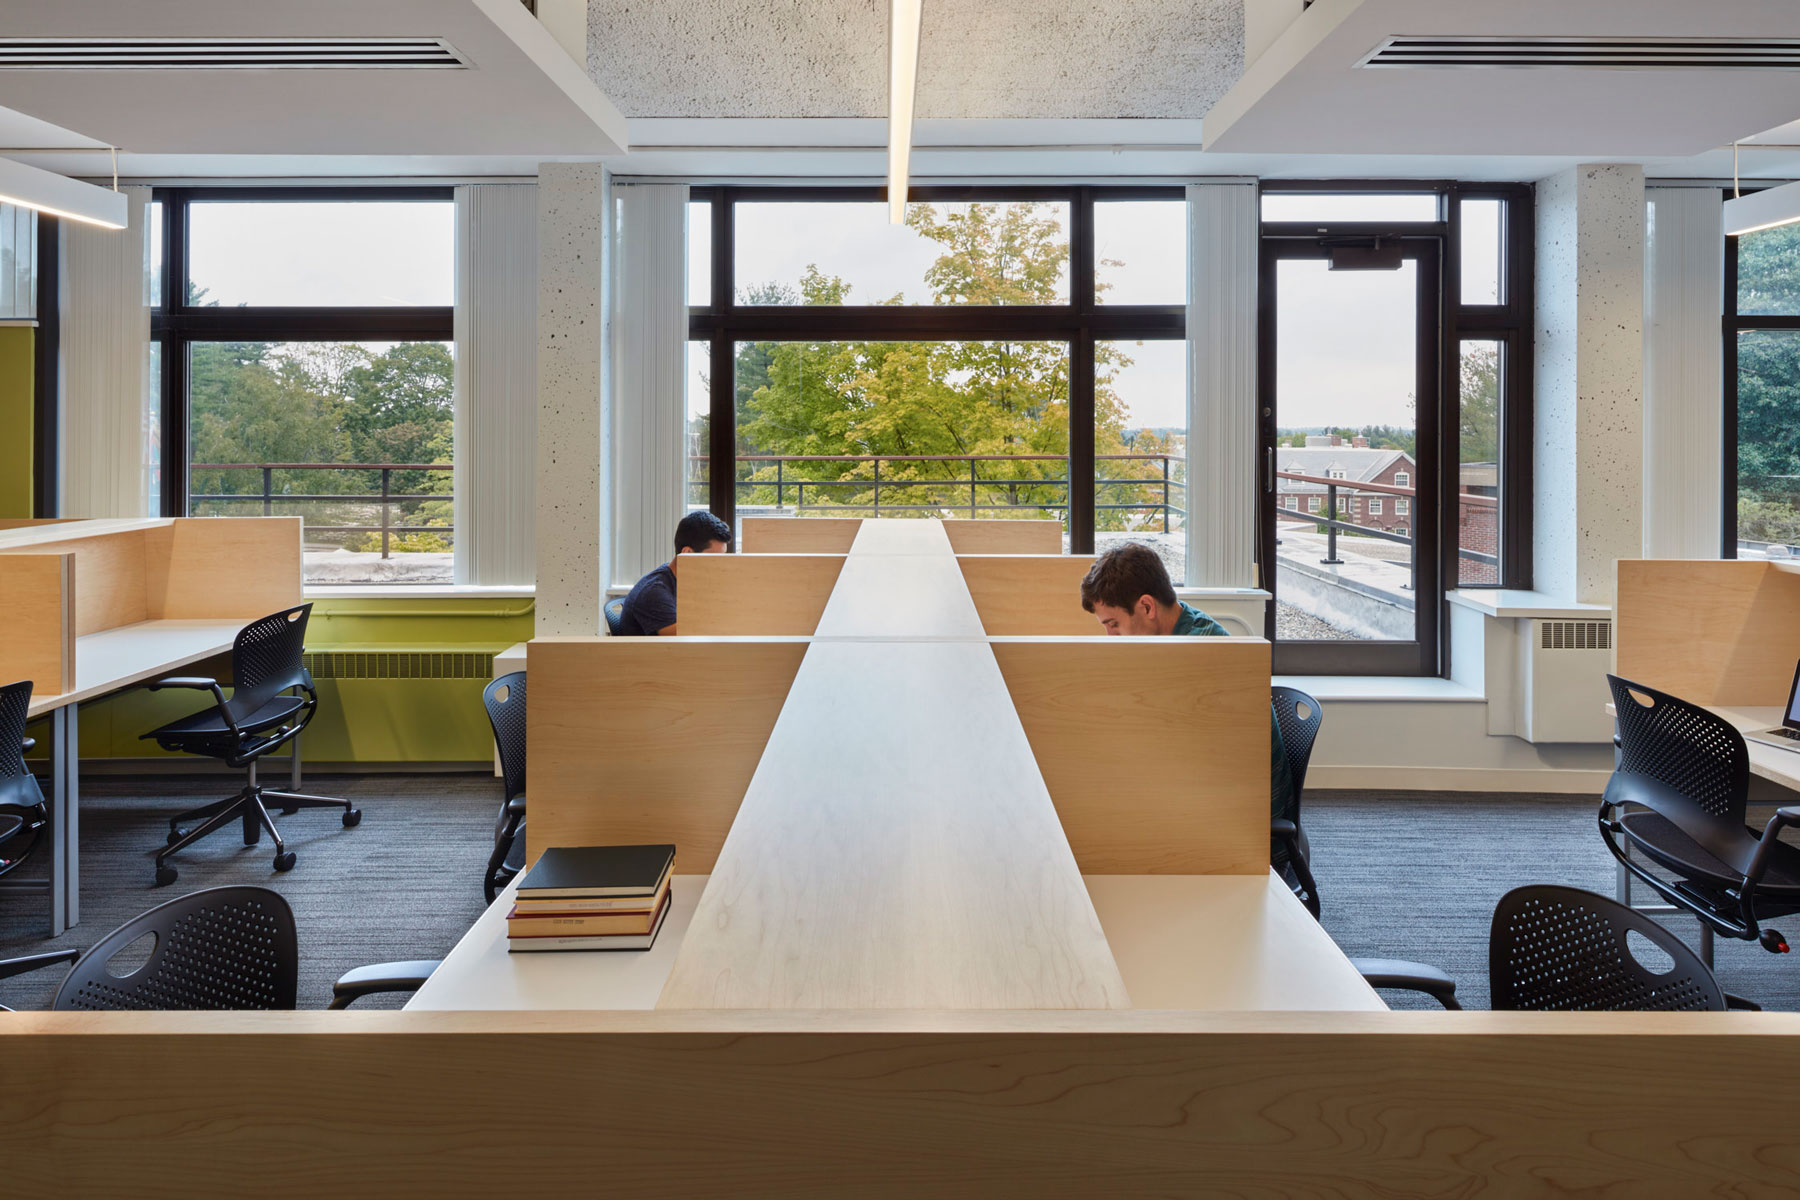 Symmetrical view over a row of study carrel, with a bright view onto green trees.